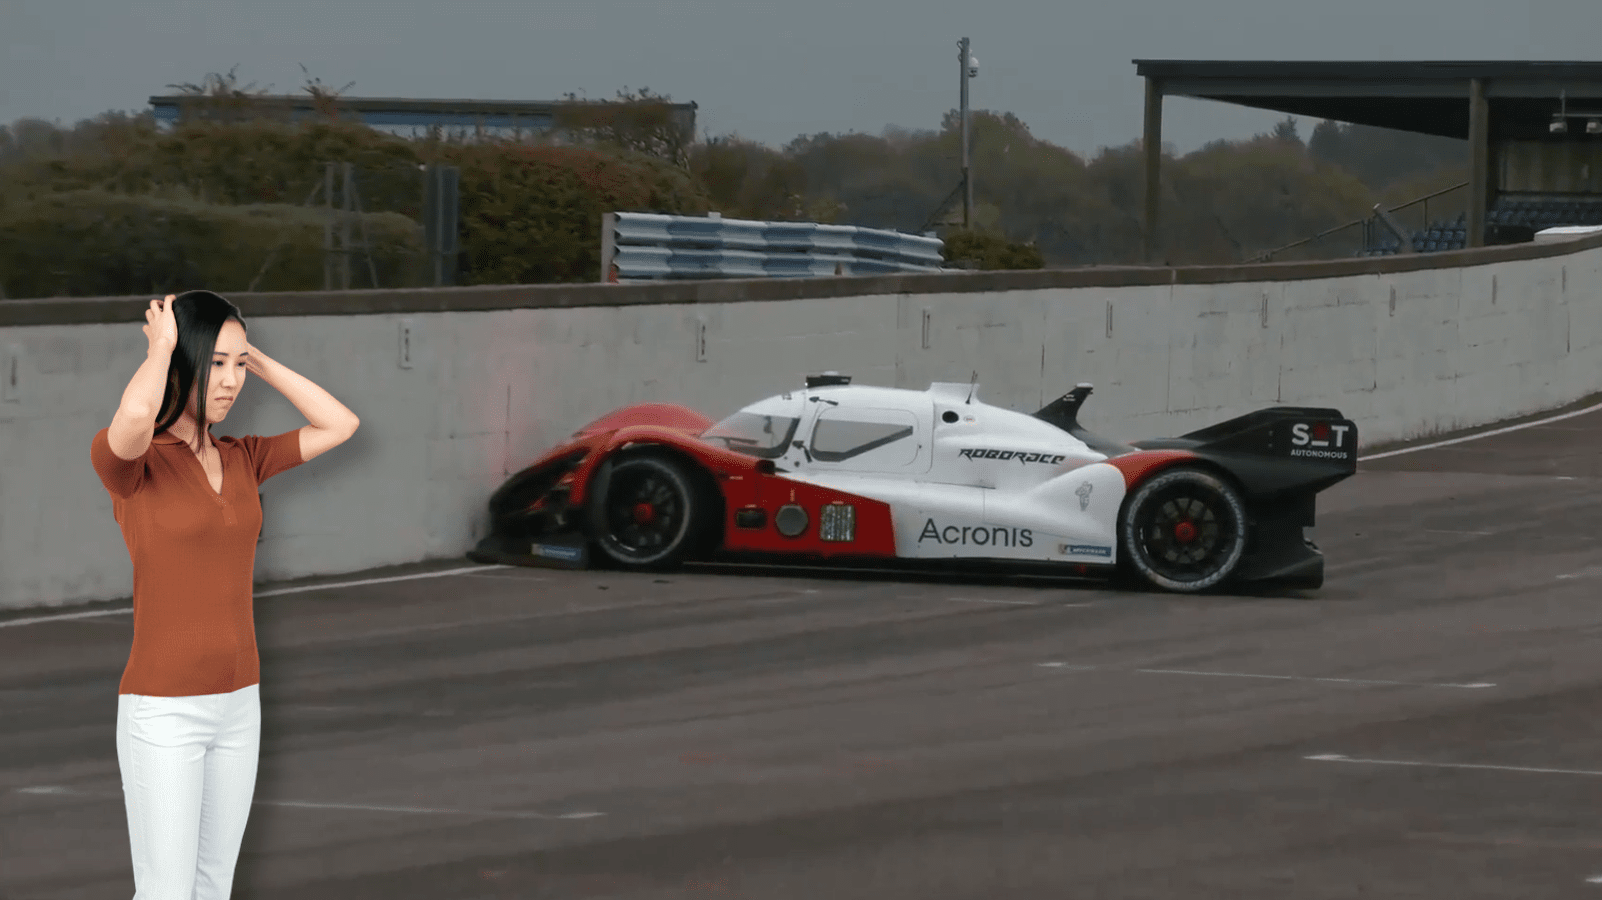 Watch this self-driving race car hilariously smash into a wall